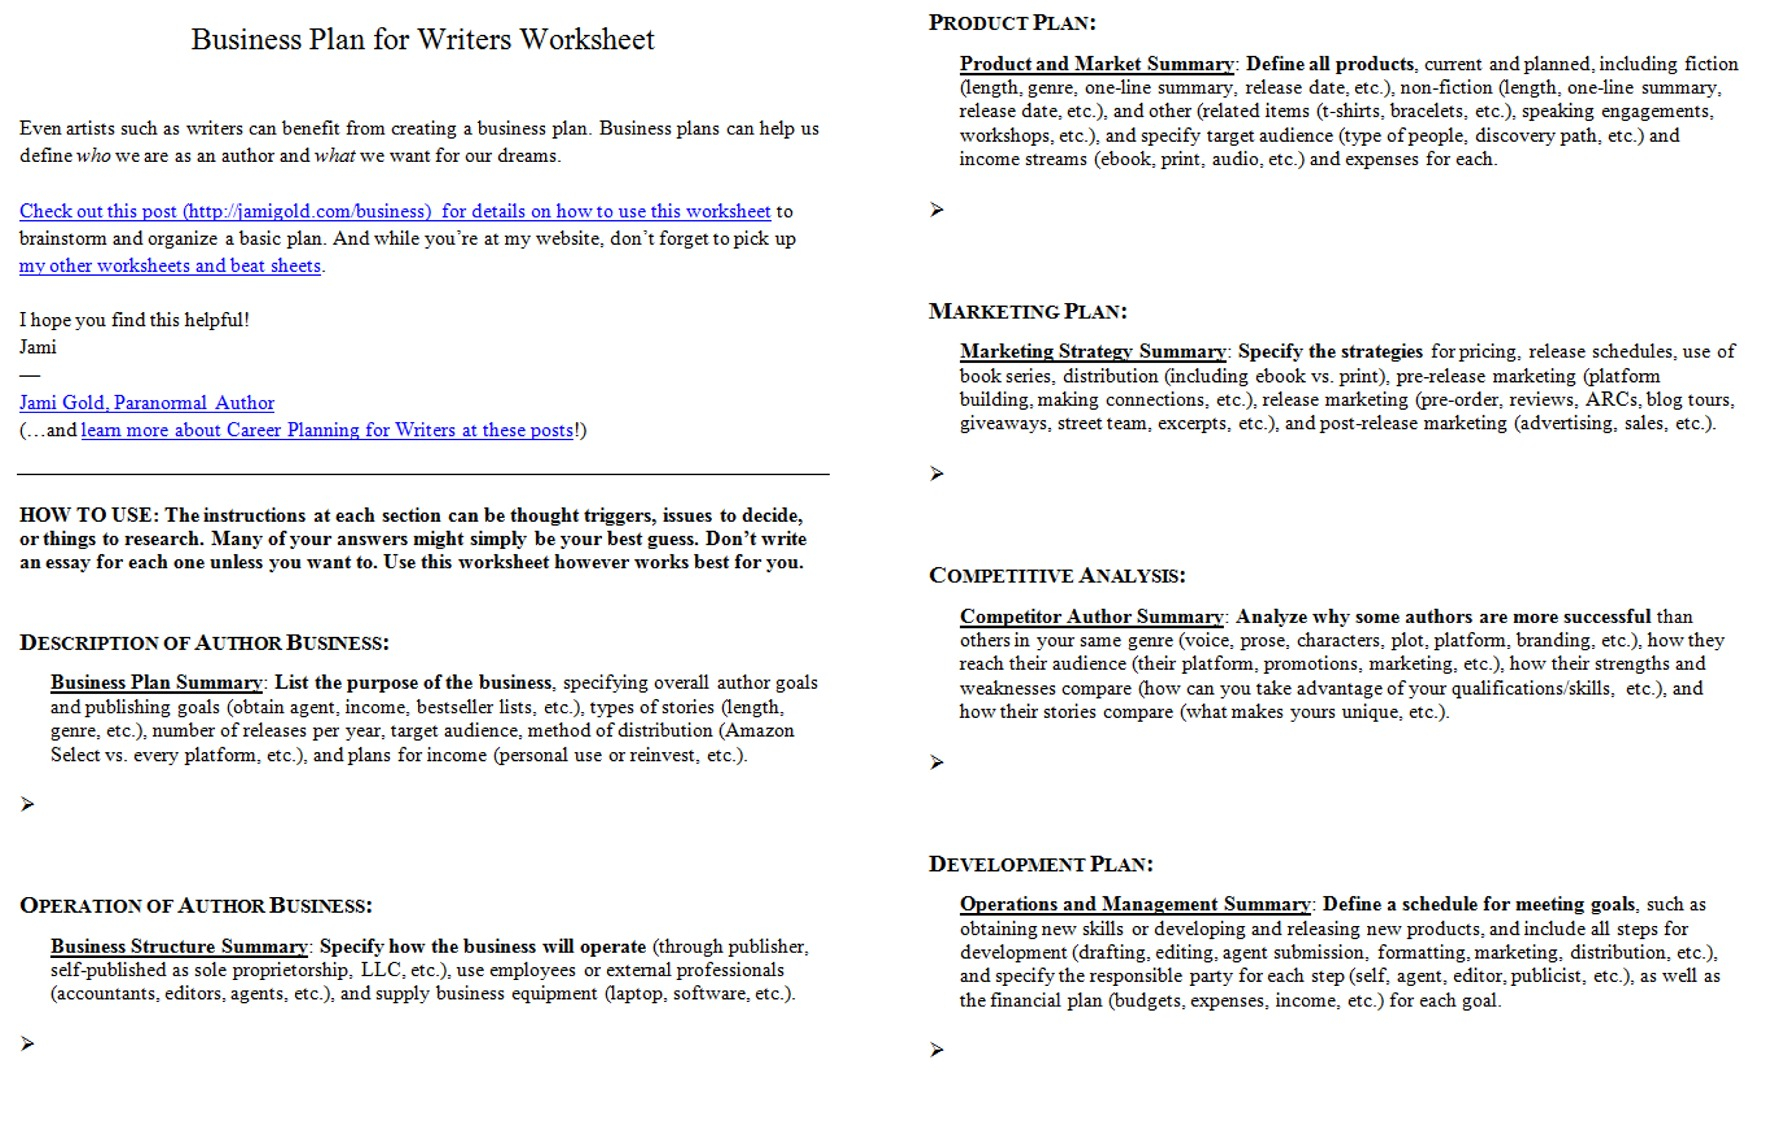 Proatmealus  Pleasing Worksheets For Writers  Jami Gold Paranormal Author With Excellent Screen Shot Of Both Pages Of The Business Plan For Writers Worksheet With Amazing Long A Worksheets For First Grade Also Teaching Colors Worksheets In Addition Prime Or Composite Worksheets And Constitution Day Worksheet As Well As St Grade Math Worksheets Addition Additionally Spanish Months Of The Year Worksheet From Jamigoldcom With Proatmealus  Excellent Worksheets For Writers  Jami Gold Paranormal Author With Amazing Screen Shot Of Both Pages Of The Business Plan For Writers Worksheet And Pleasing Long A Worksheets For First Grade Also Teaching Colors Worksheets In Addition Prime Or Composite Worksheets From Jamigoldcom